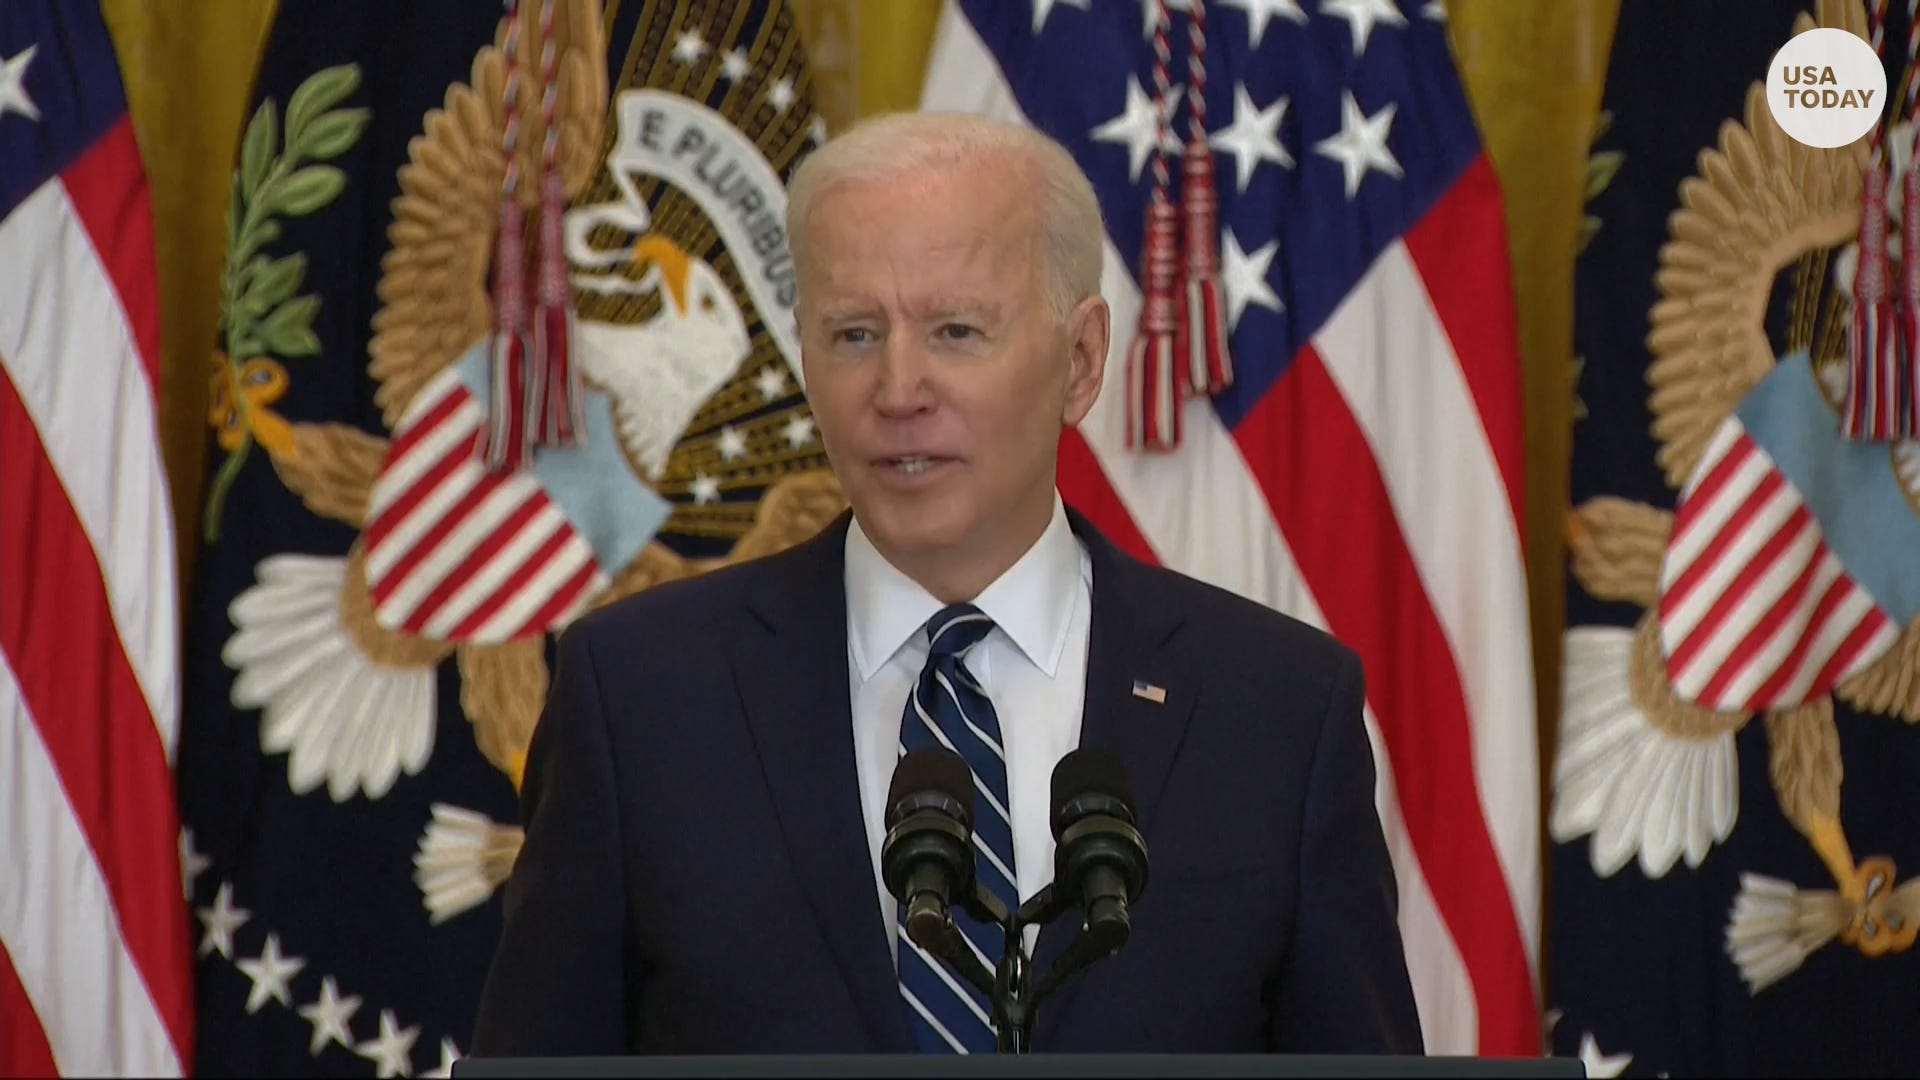 President Biden calls the situation at border facilities 'totally unacceptable'